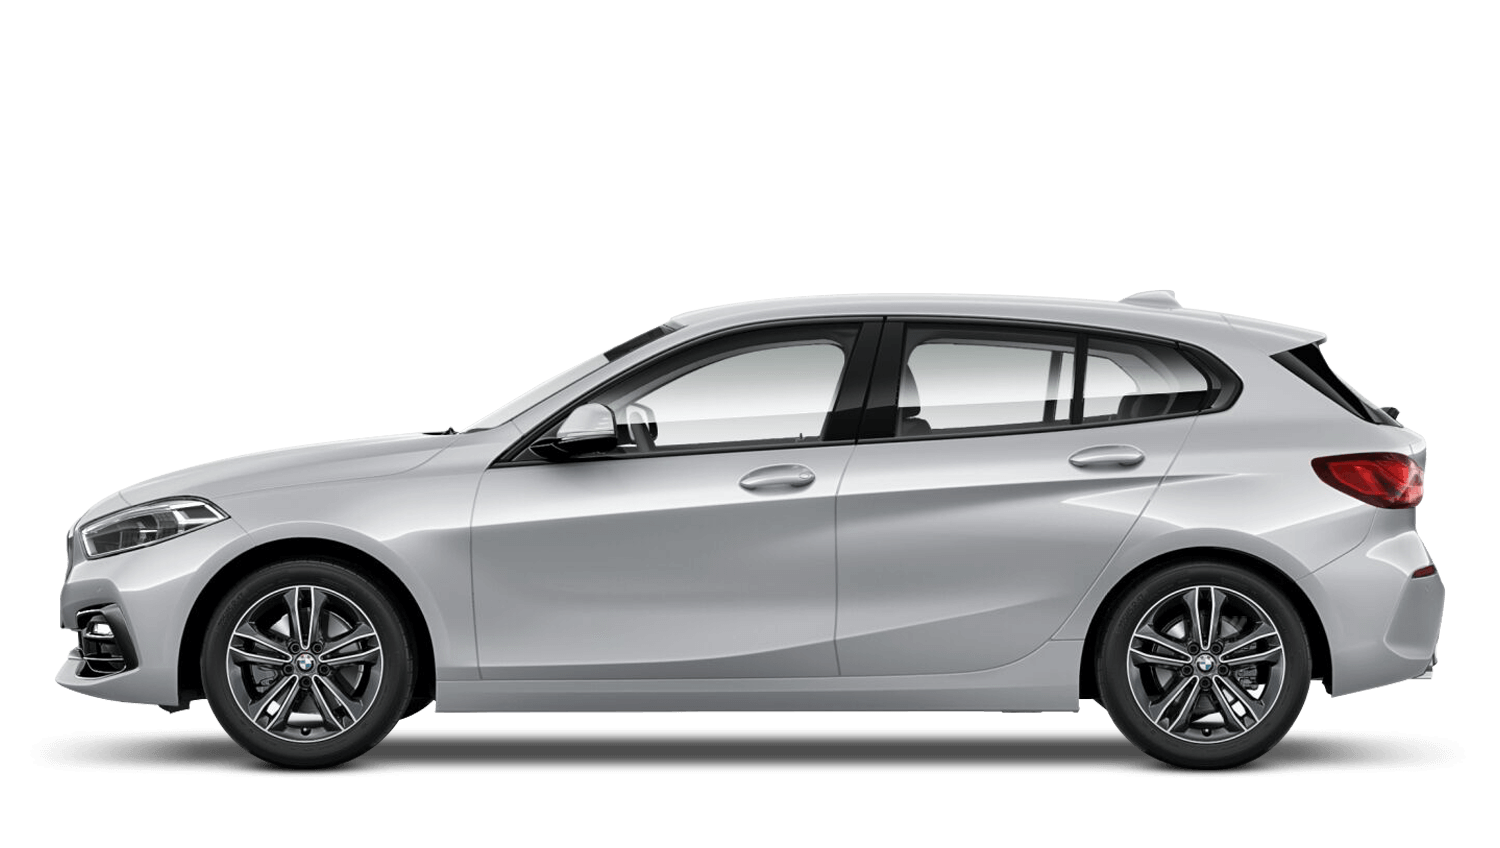 Glacier Silver BMW 1 Series Sports Hatch